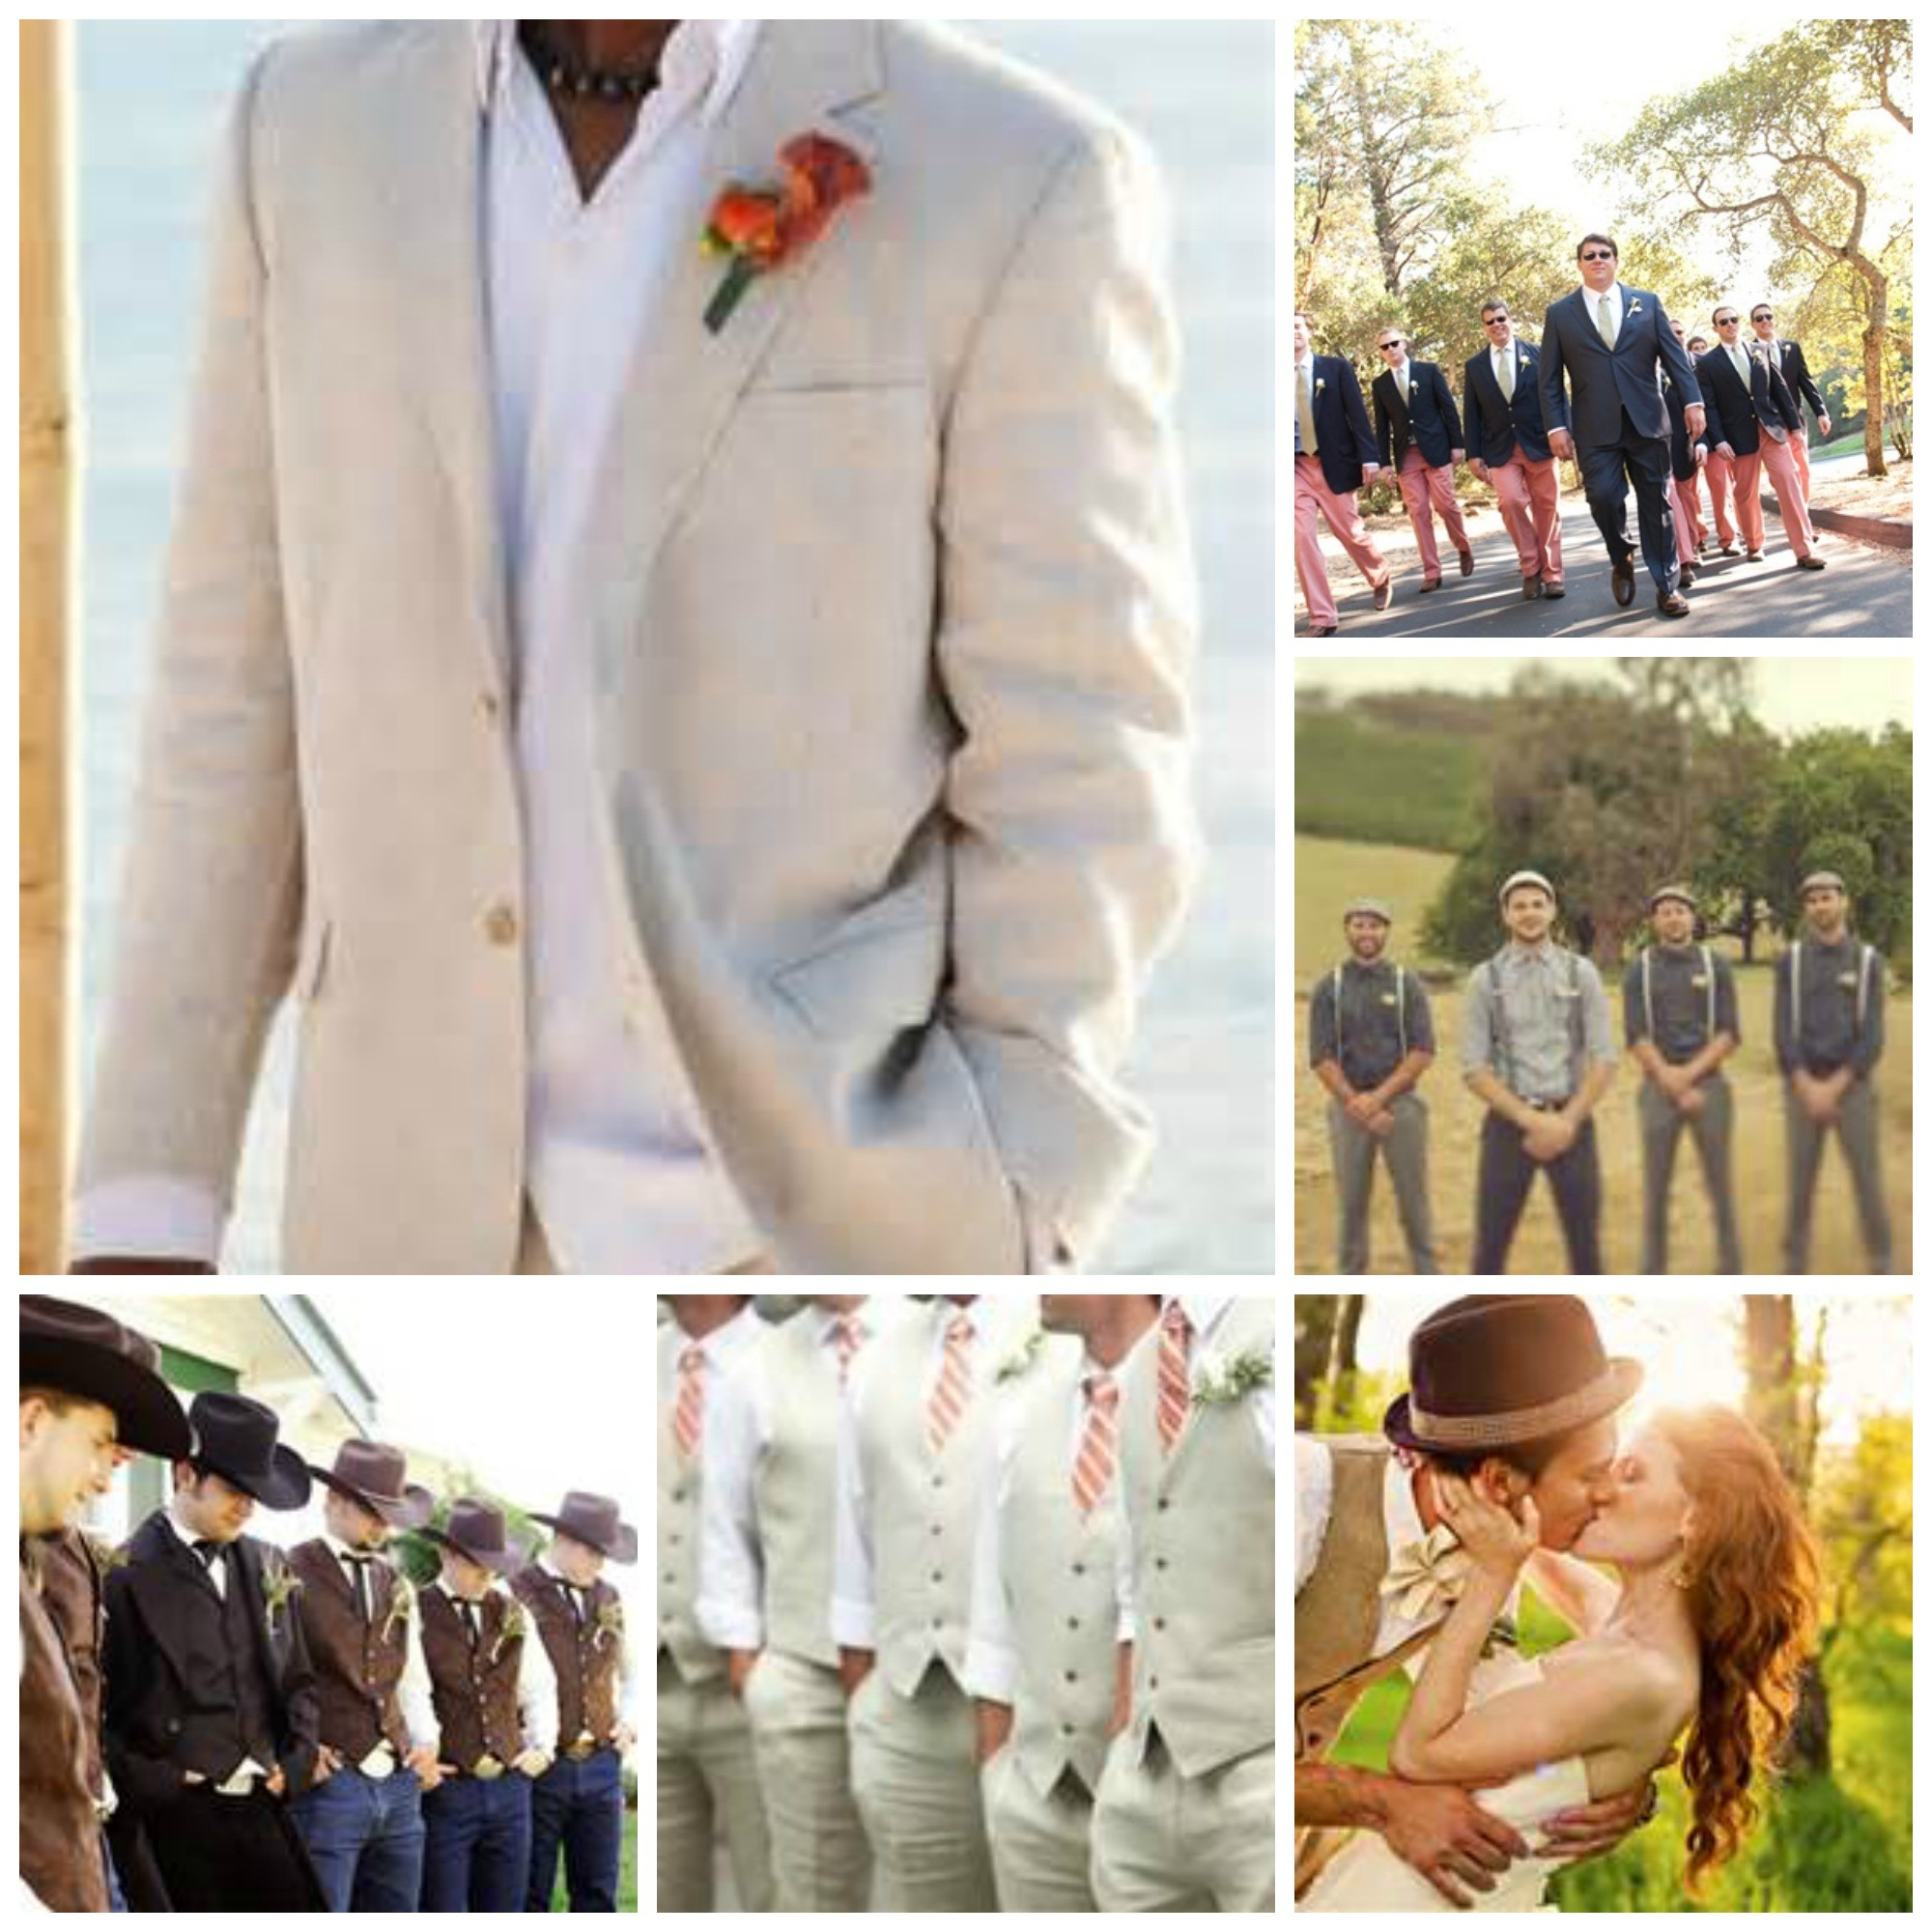 Bride And Groom Only Wedding Ideas: Grooms Attire For The Wedding, Tux Vs Suit